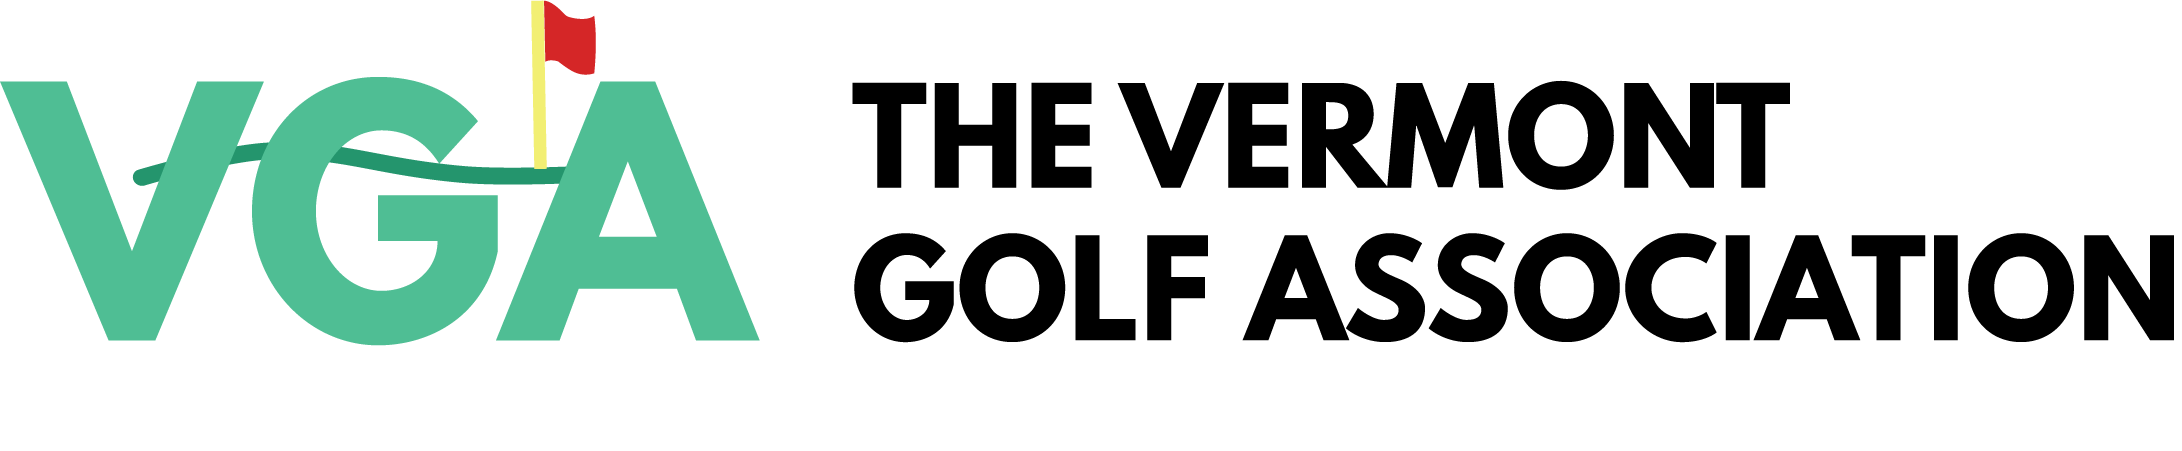 The Vermont Golf Association